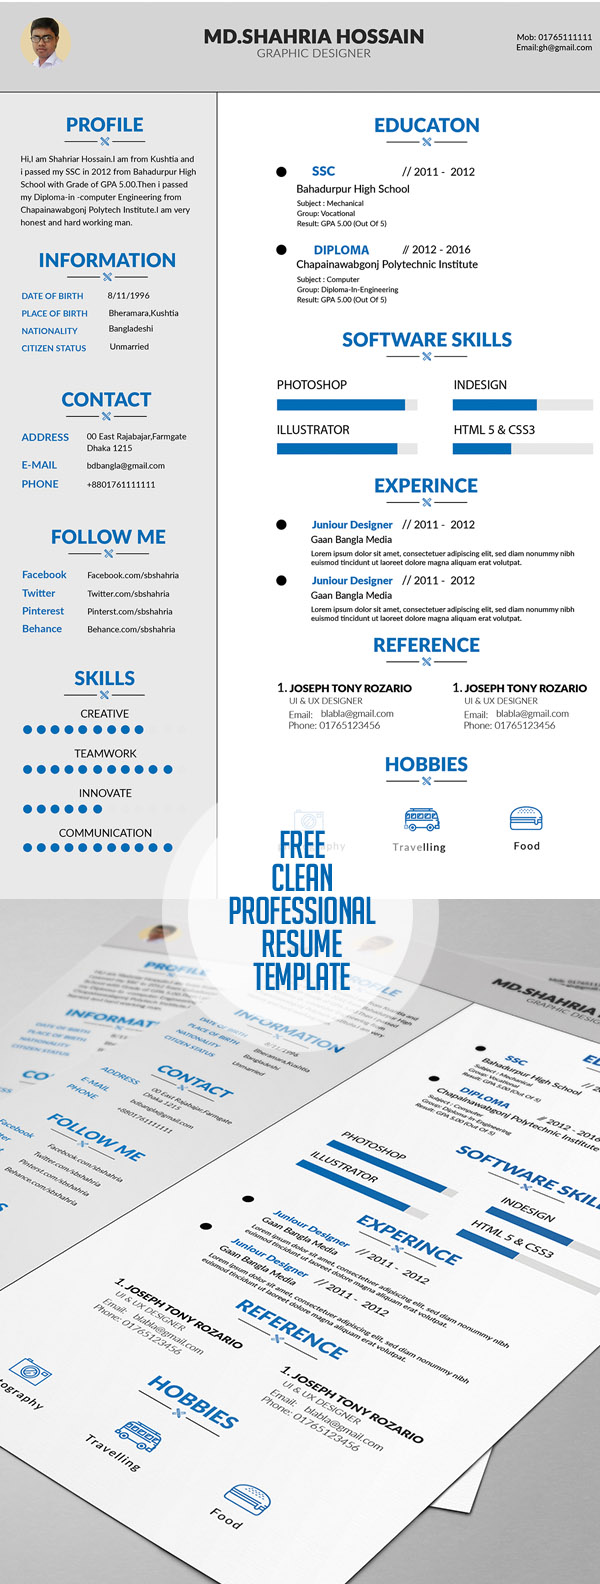 Free Clean Proffesional Resume Design